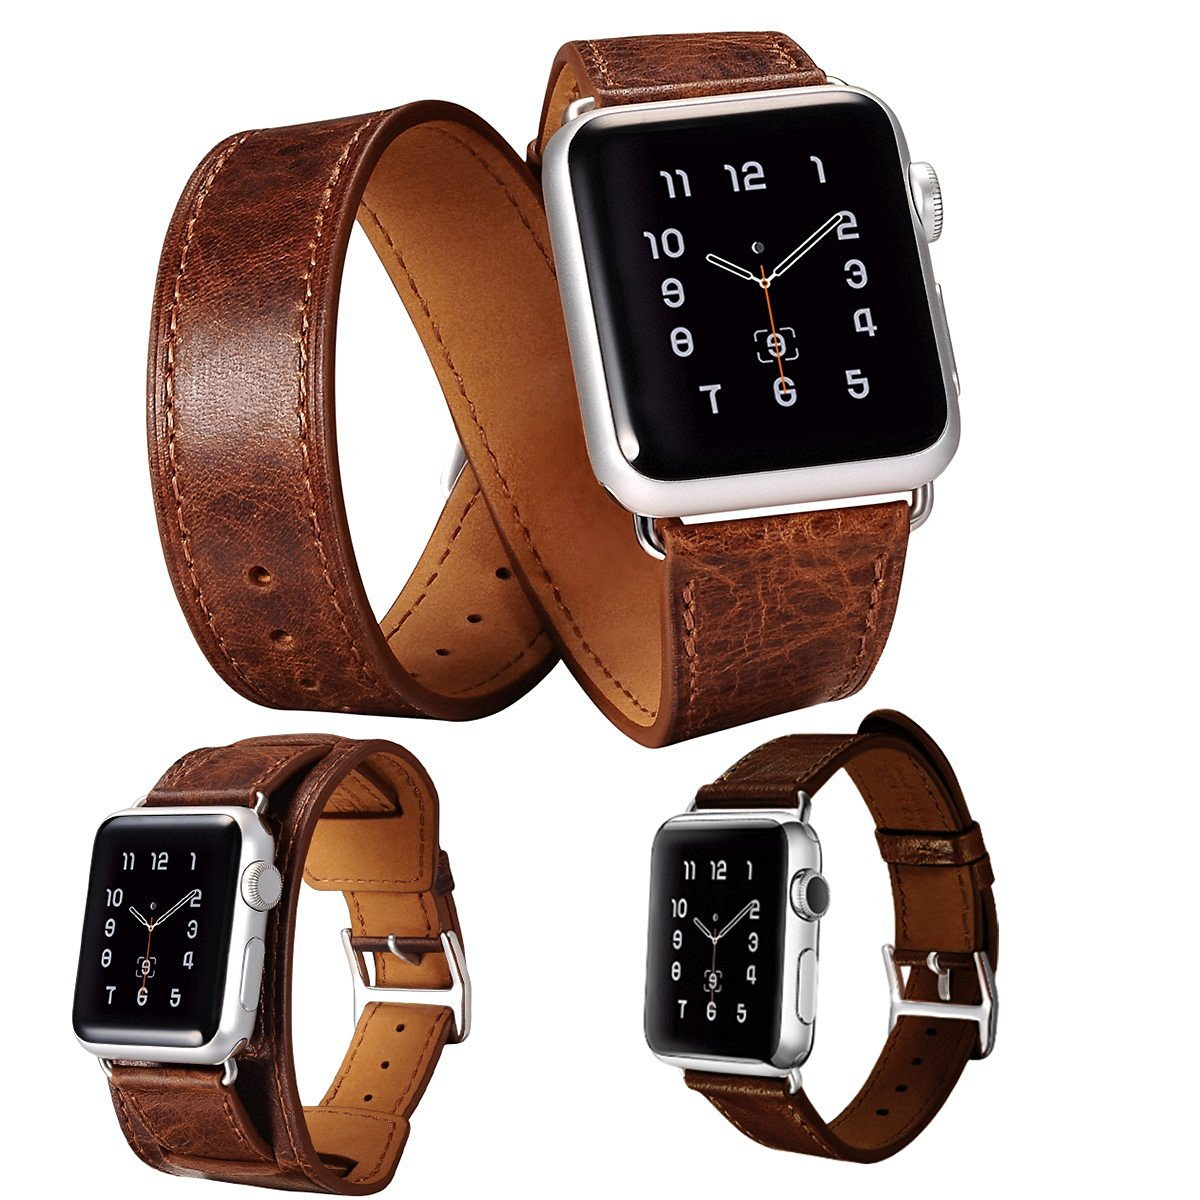 3 in 1 Apple Watch Leather Cuff Band, Lecxci Mens/Womens Retro Real Cowhide Leather [Bracelet/Single/Double Loop Strap] iWatch 38 mm / 42 mm Band for Apple iWatch 38 mm / 42 mm (Coffee 38mm)